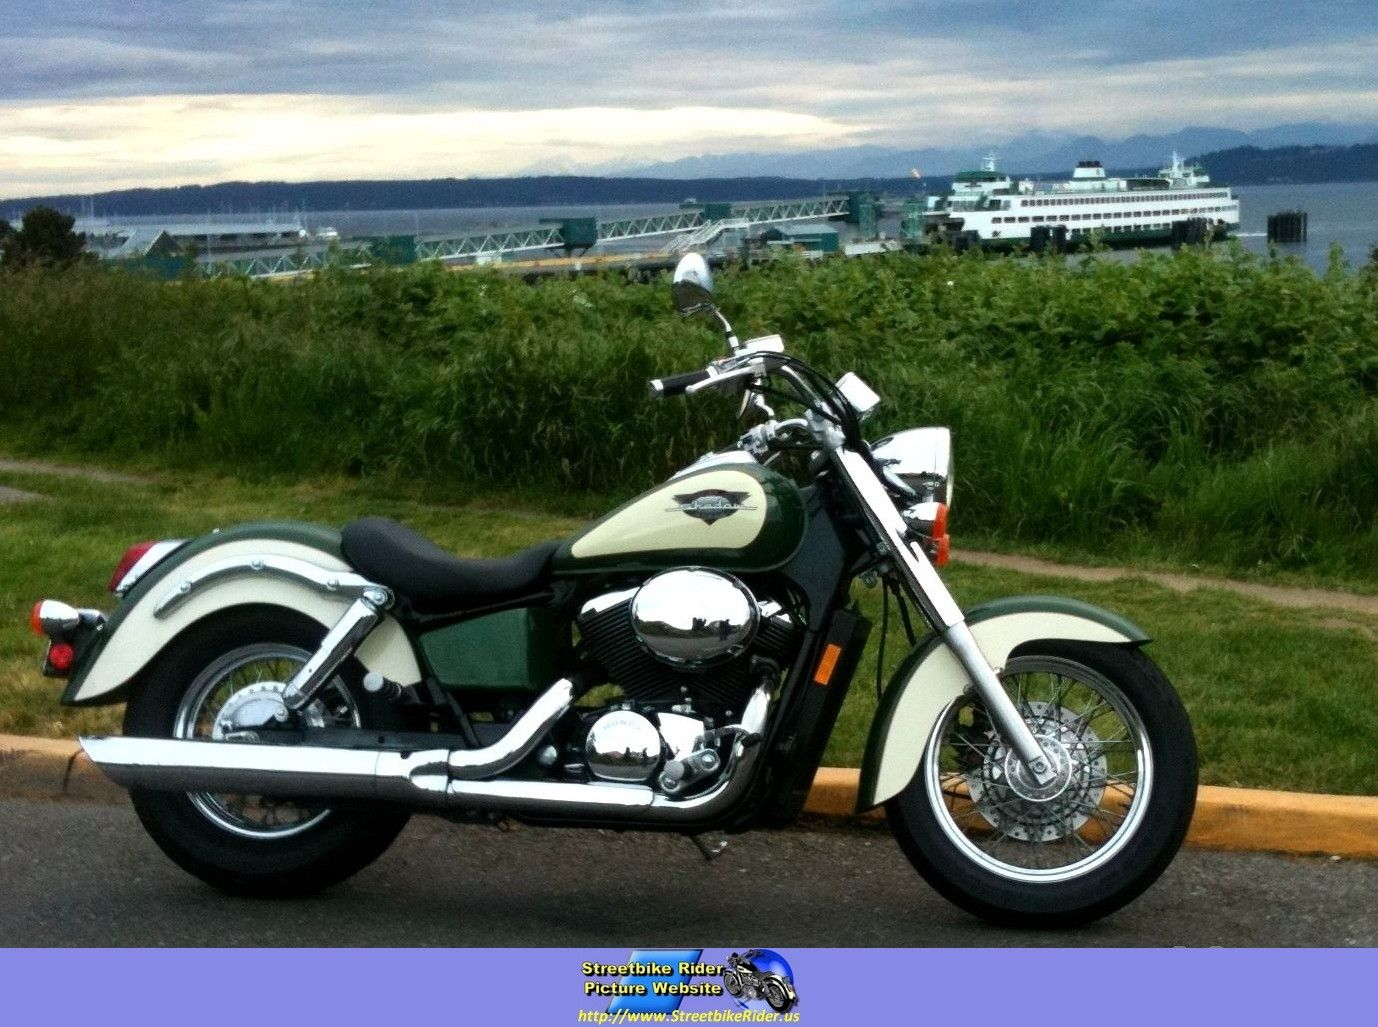 medium resolution of 1999 honda shadow 750 ace green another view of my favorite bike